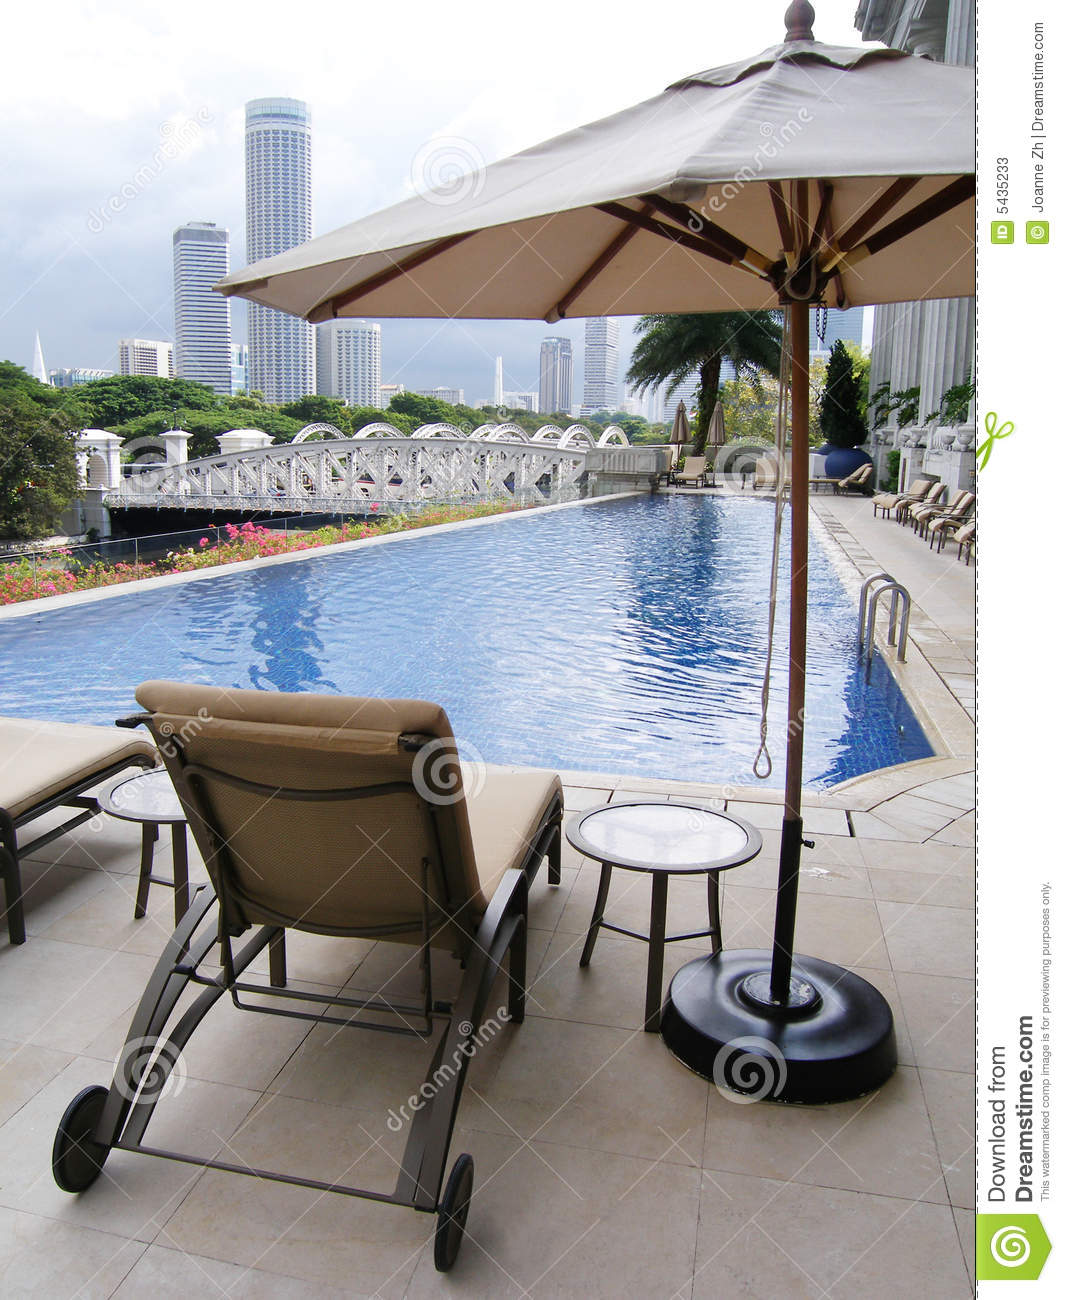 Luxury Hotel Pool City View Stock Image Image Of Lounger Loungers 5435233